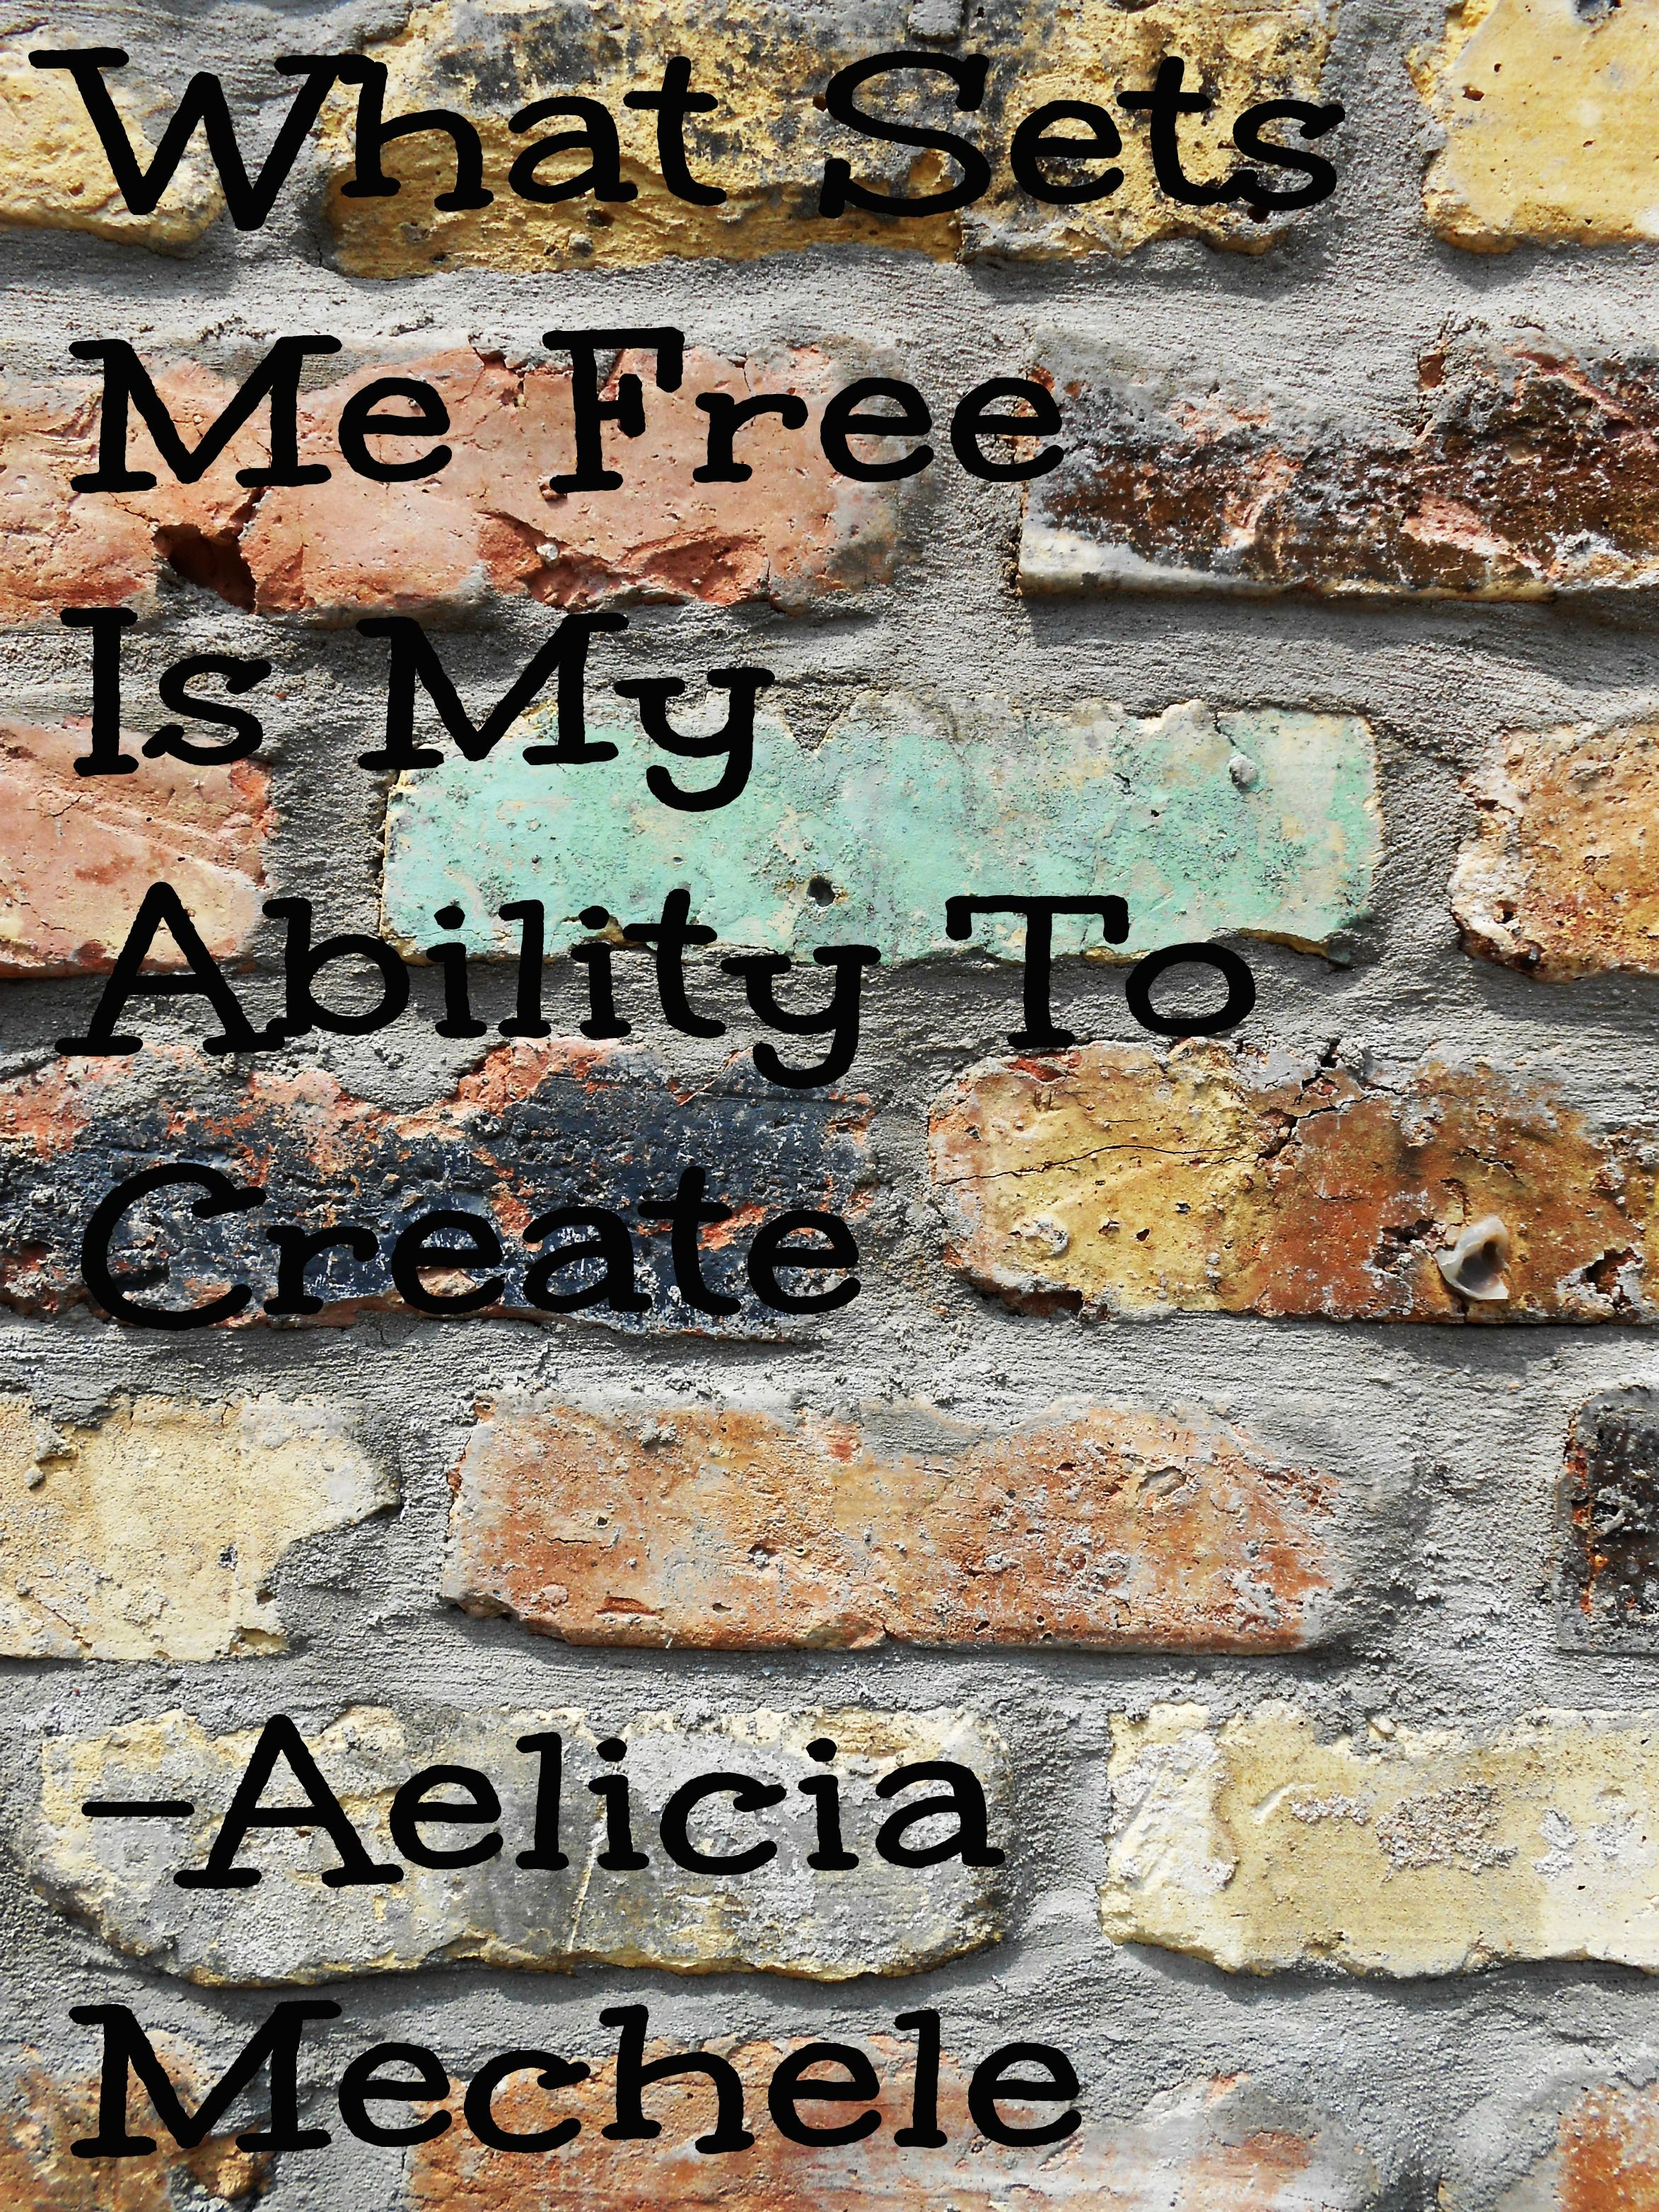 What sets me free is my ability to create -Aelicia Mechele